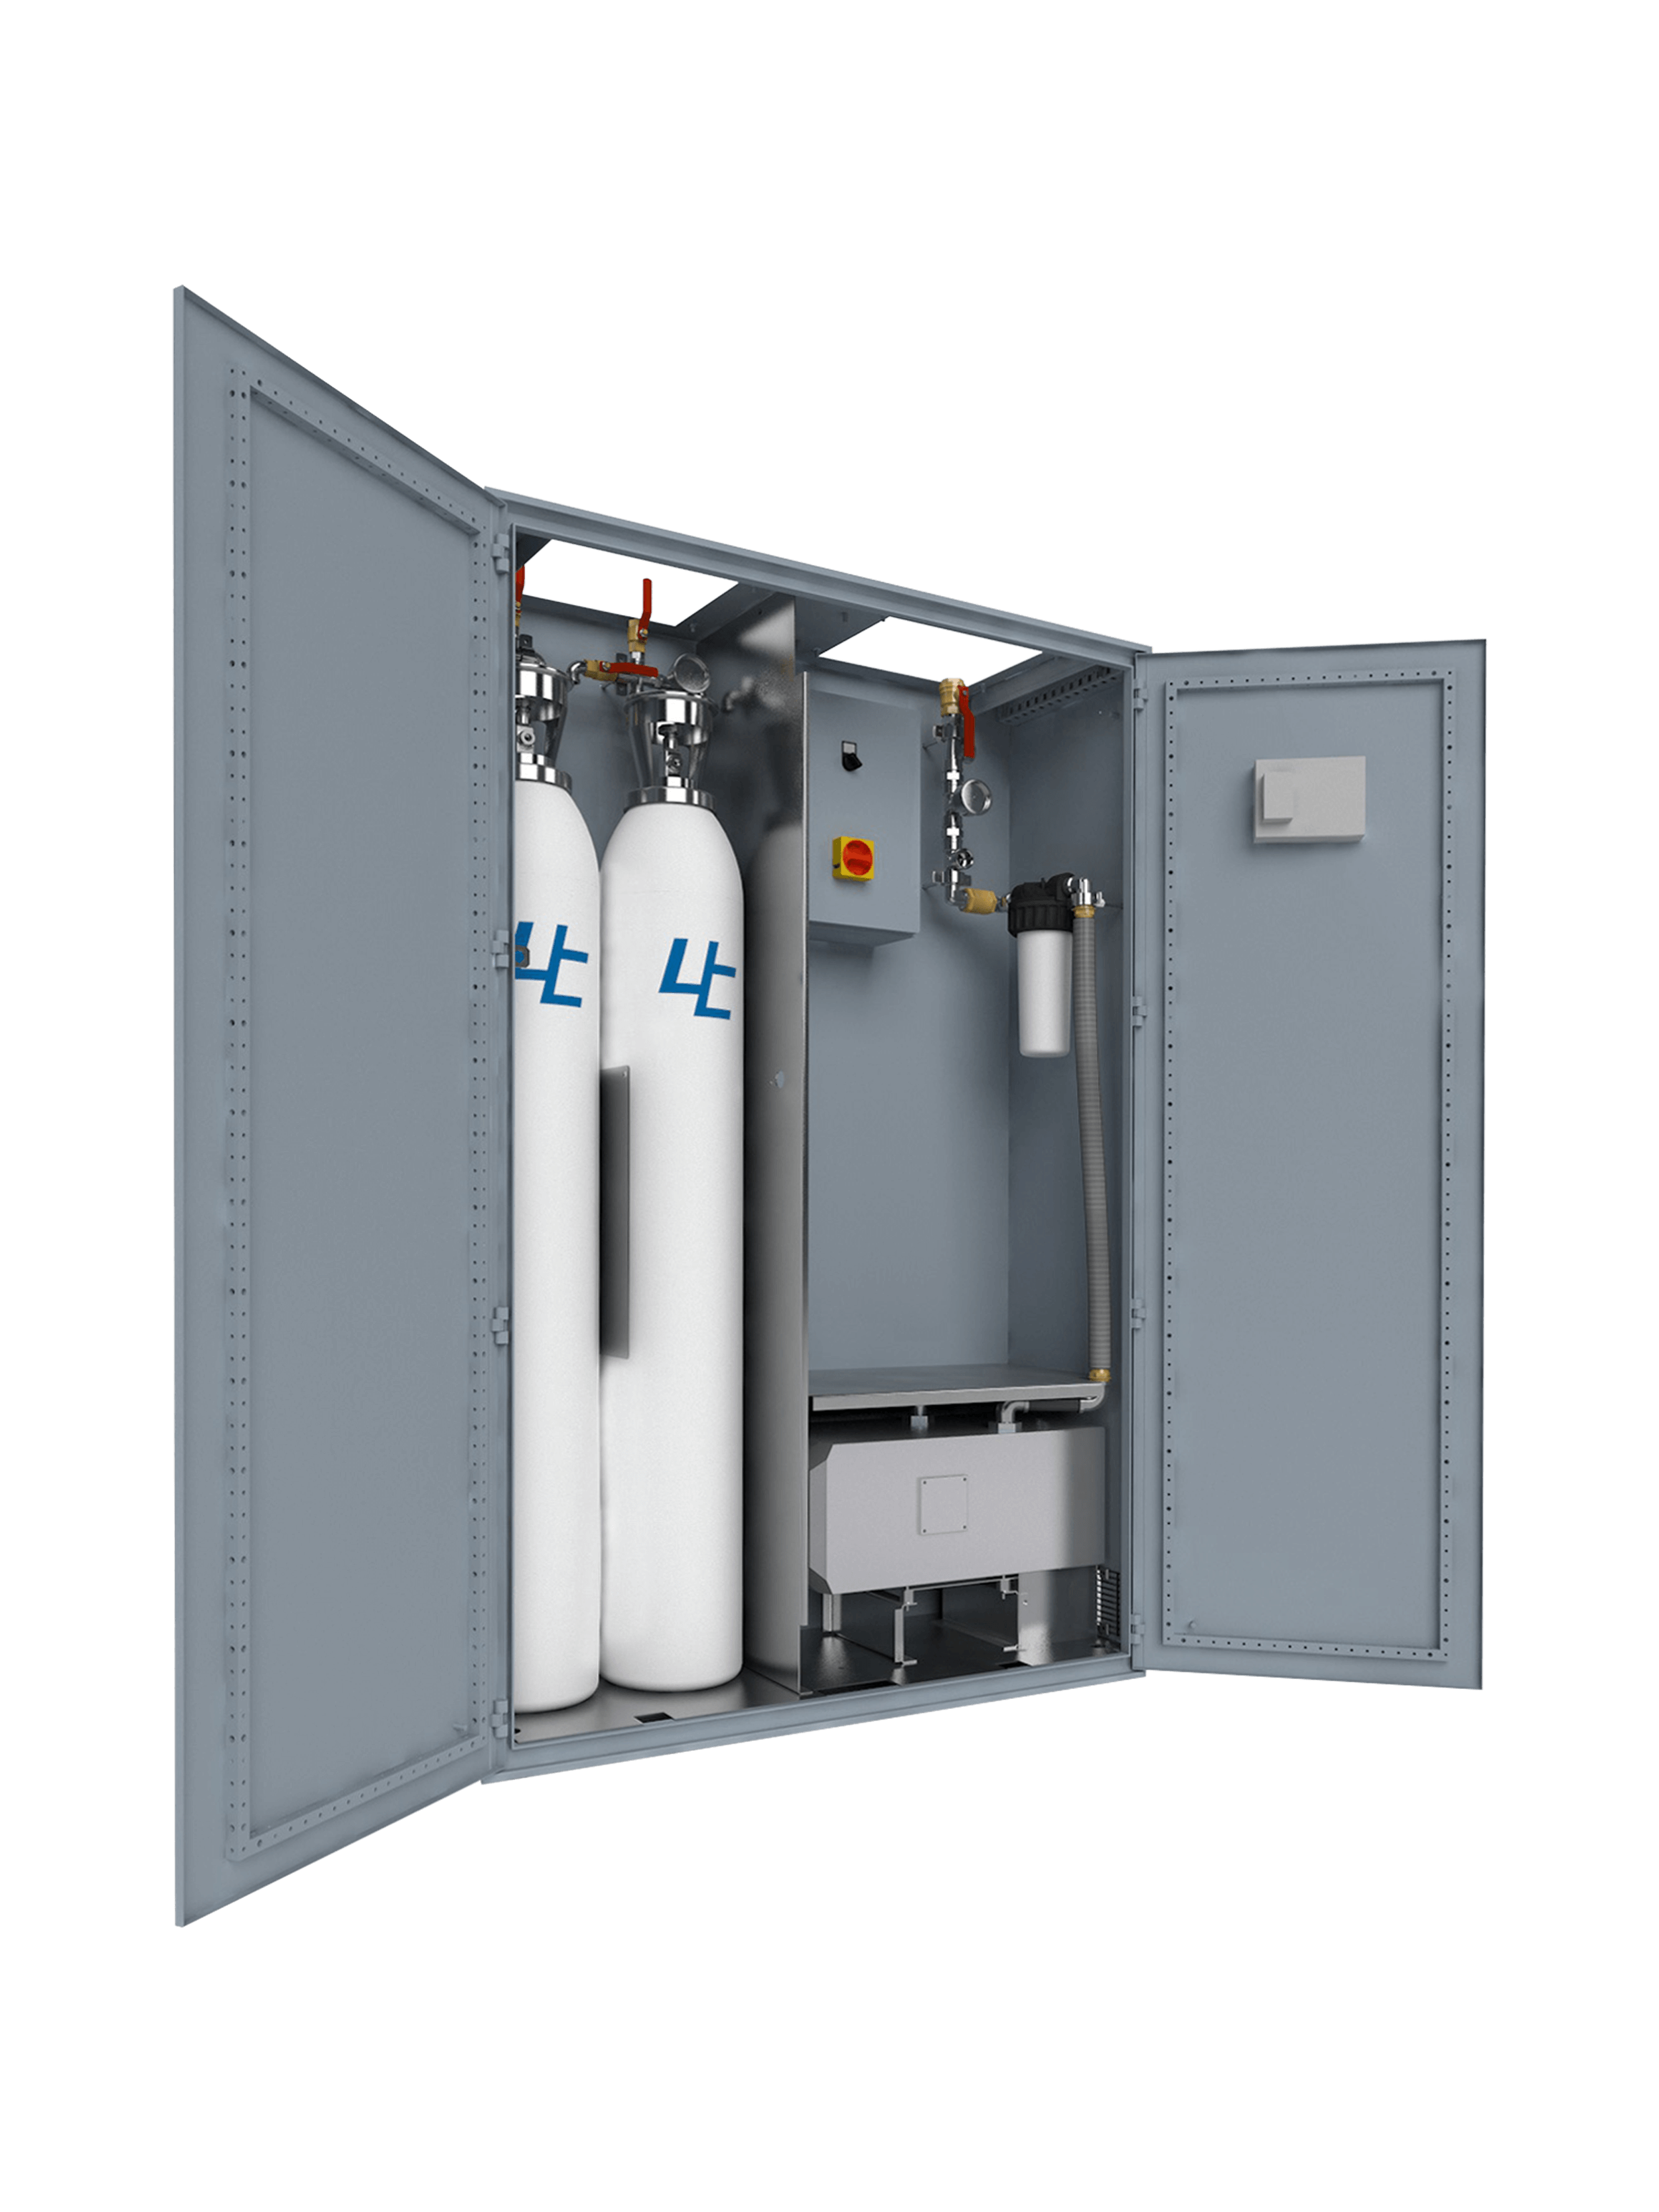 Emergency Cabine ensures the permanent supply of medical gases in the most critical areas.